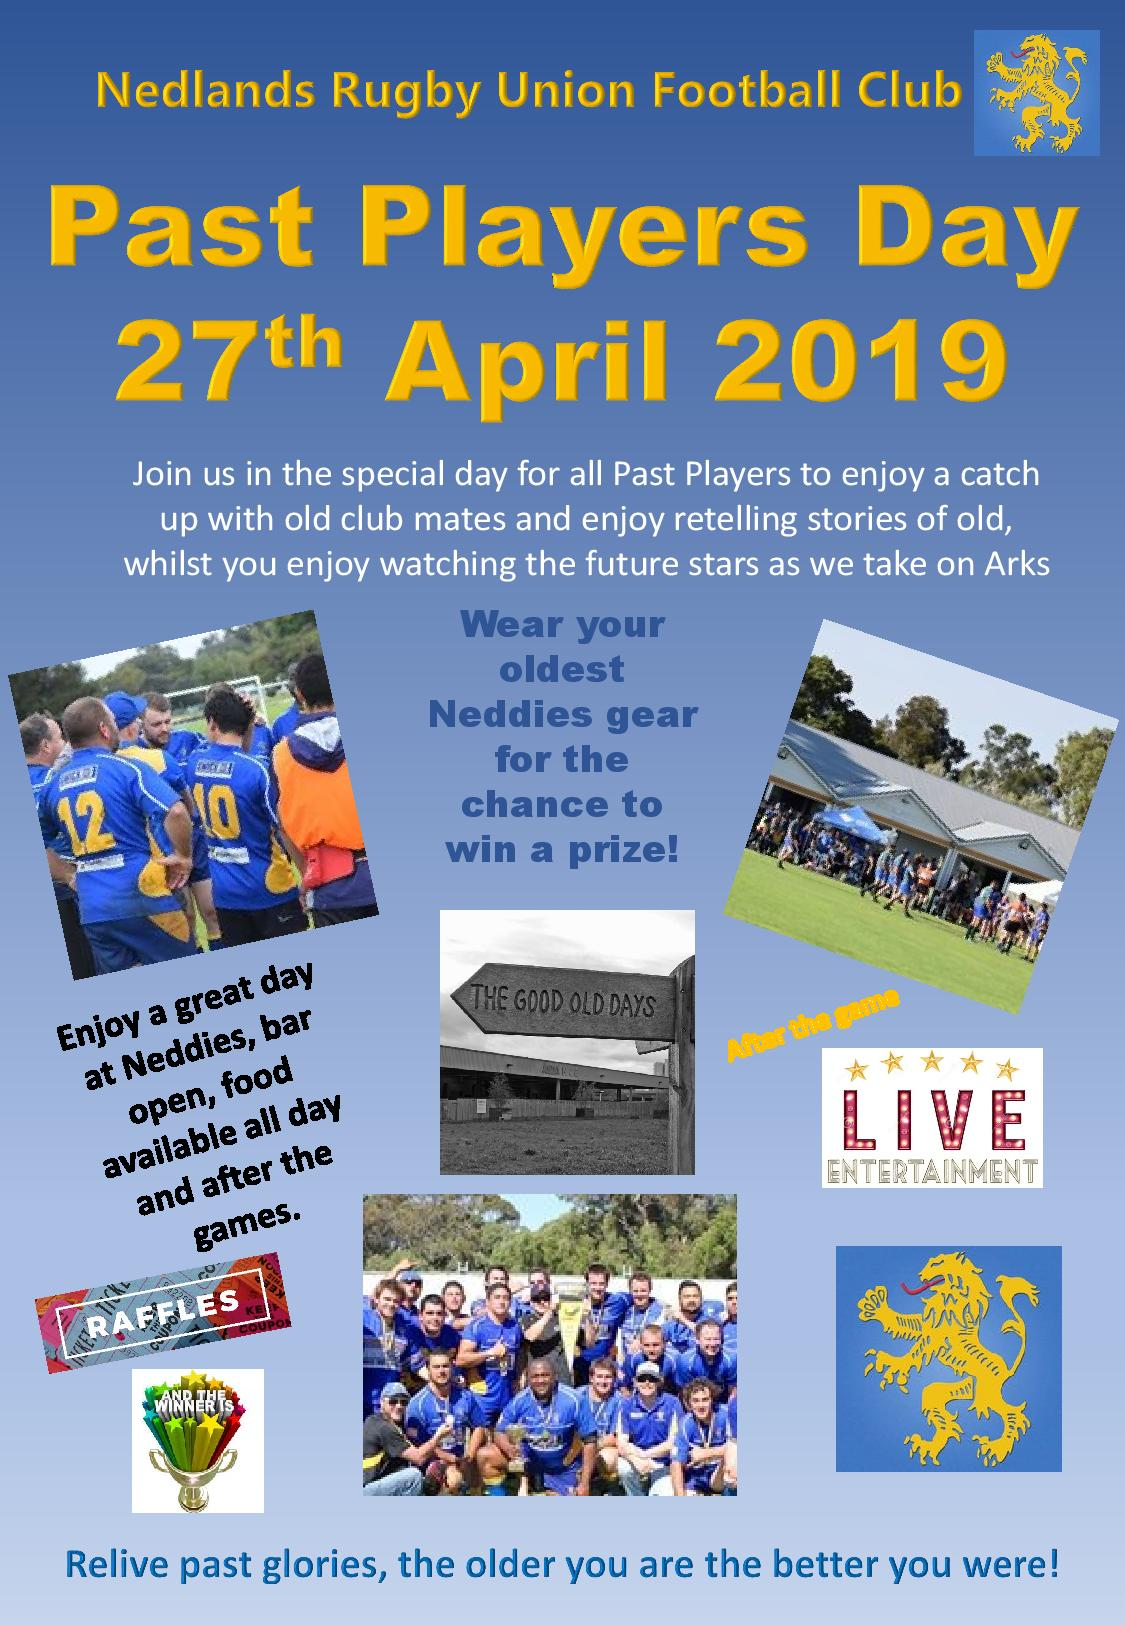 Past Players Day – 27 April 2019 and Upcoming Events